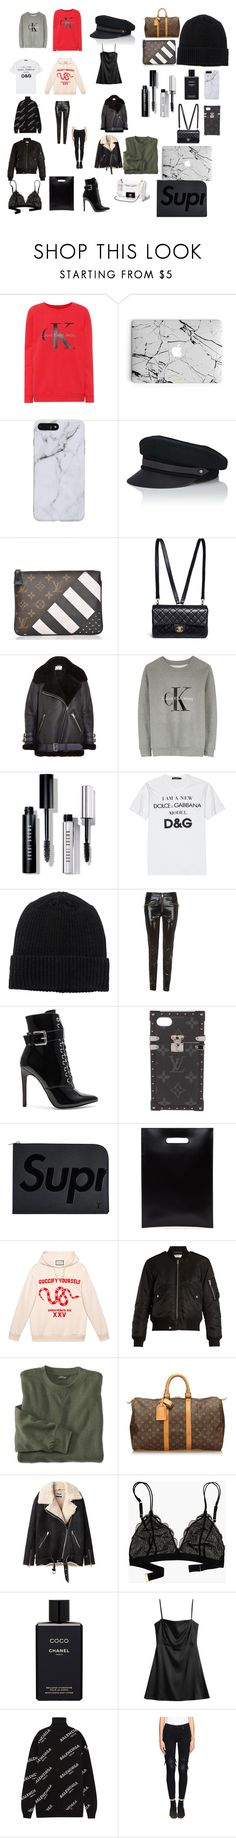 """for me fashion young kit"" by laurent79 on Polyvore featuring mode, Calvin Klein Jeans, Lola, Louis Vuitton, Chanel, Acne Studios, Calvin Klein, Bobbi Brown Cosmetics, Dolce&Gabbana et Monki"